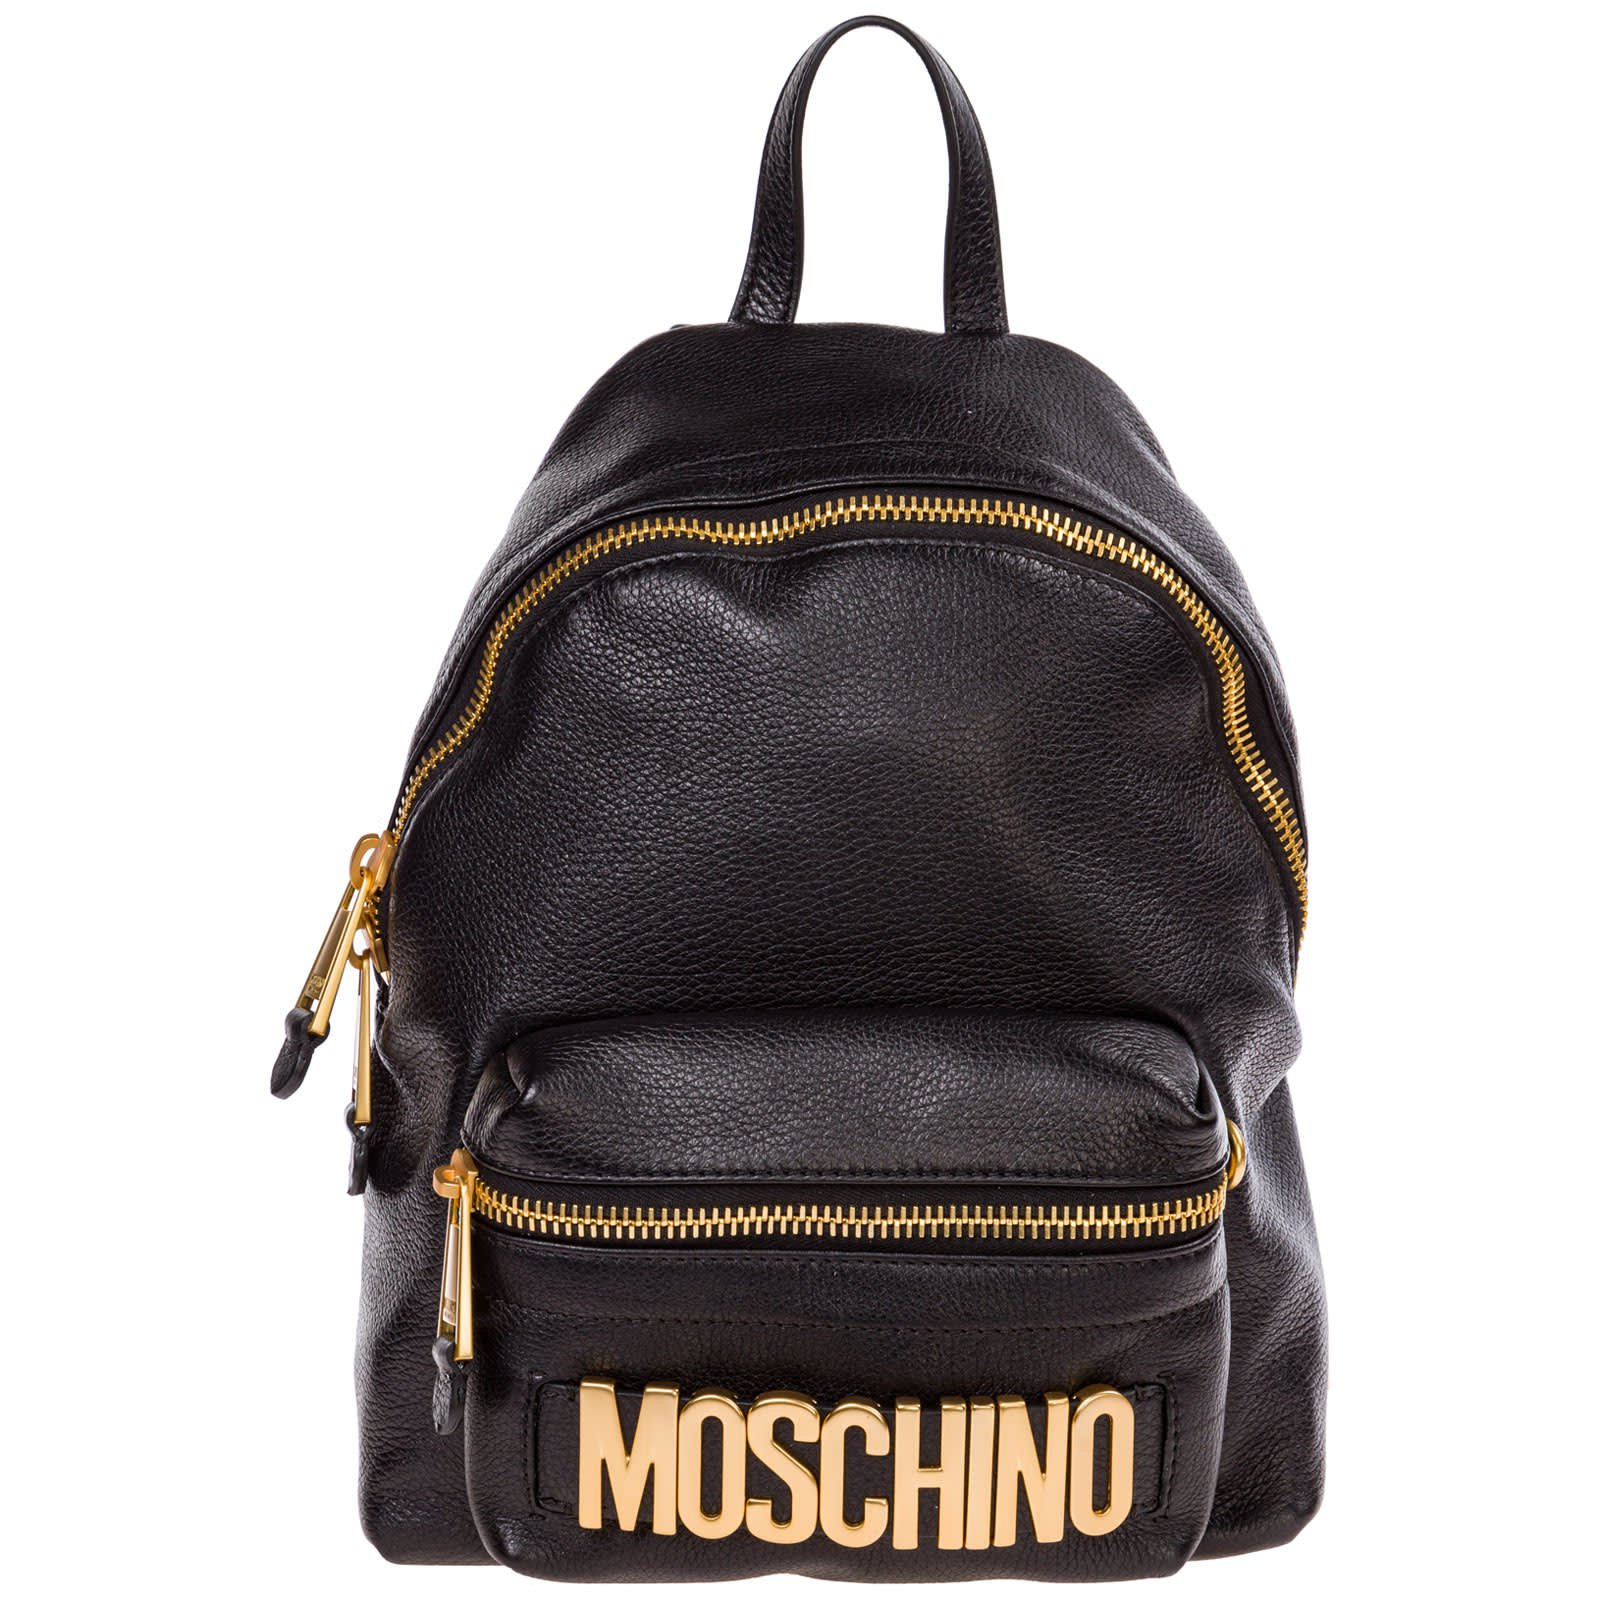 Moschino Leather Rucksack Backpack Travel